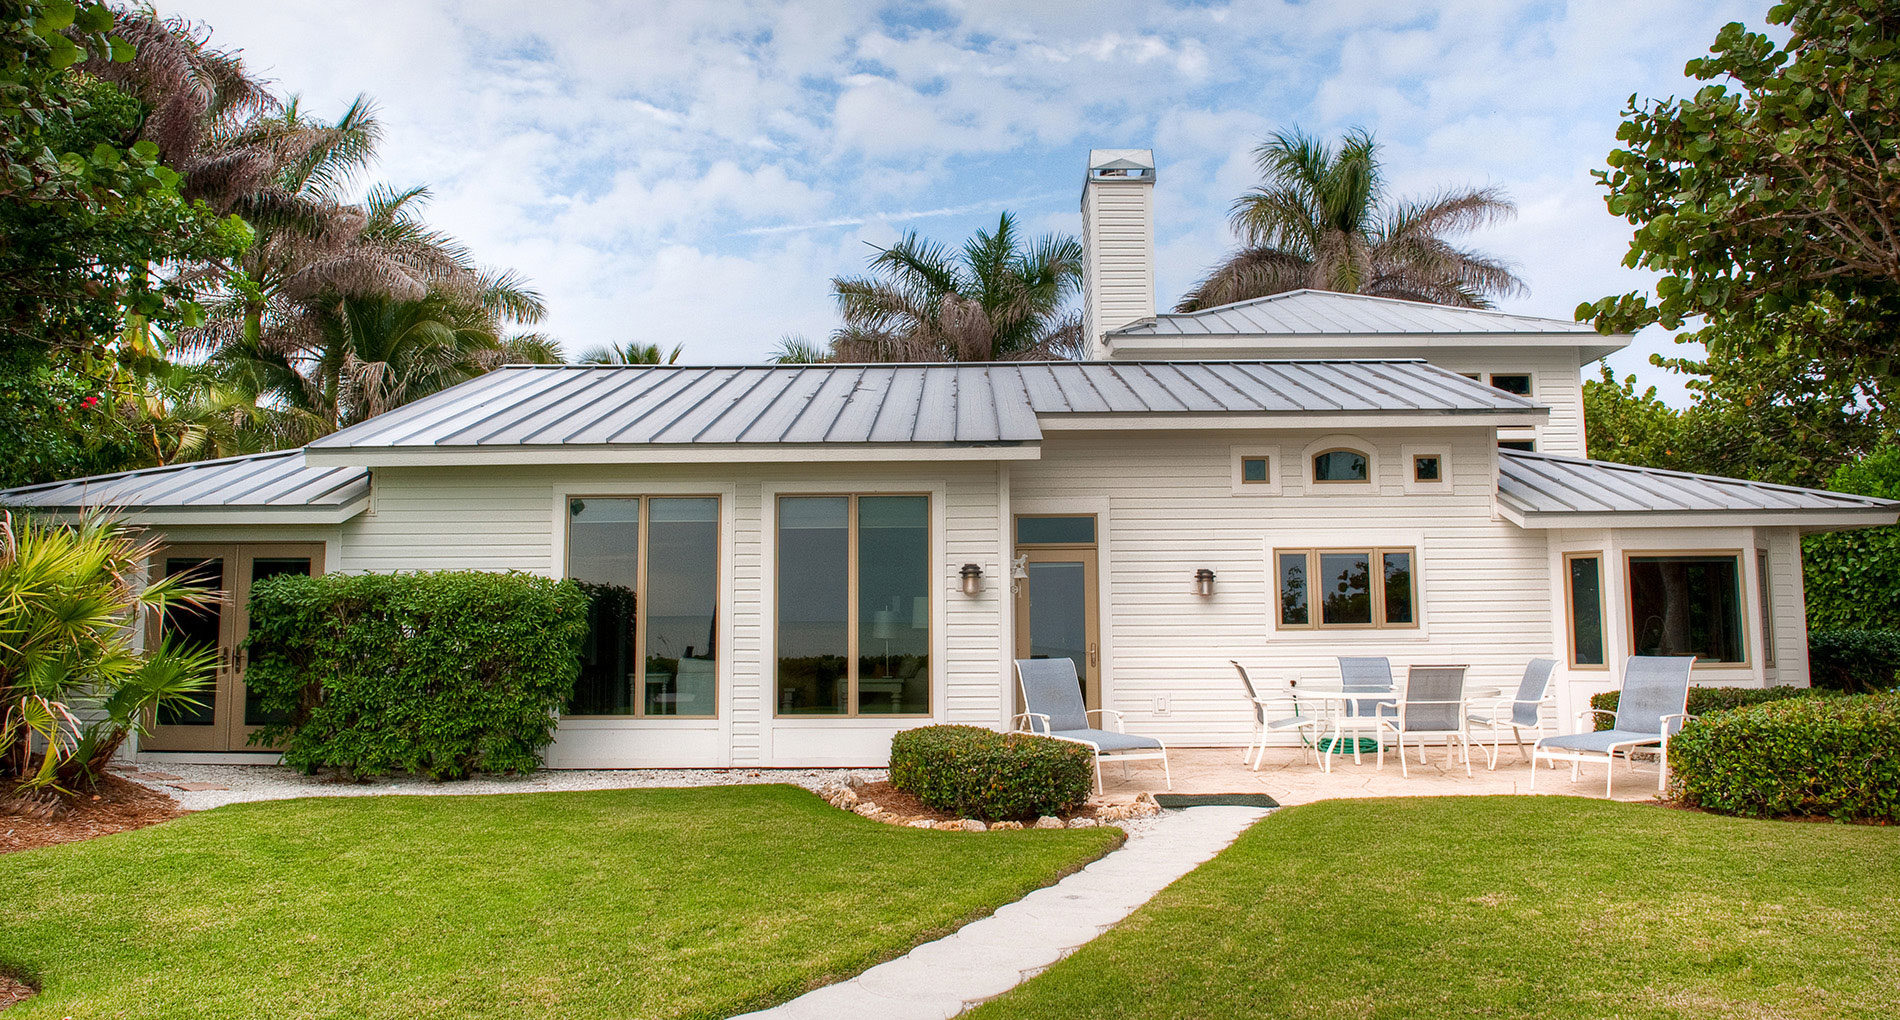 Beach Cottage Sanibel Sanibelbeachcottage Slider